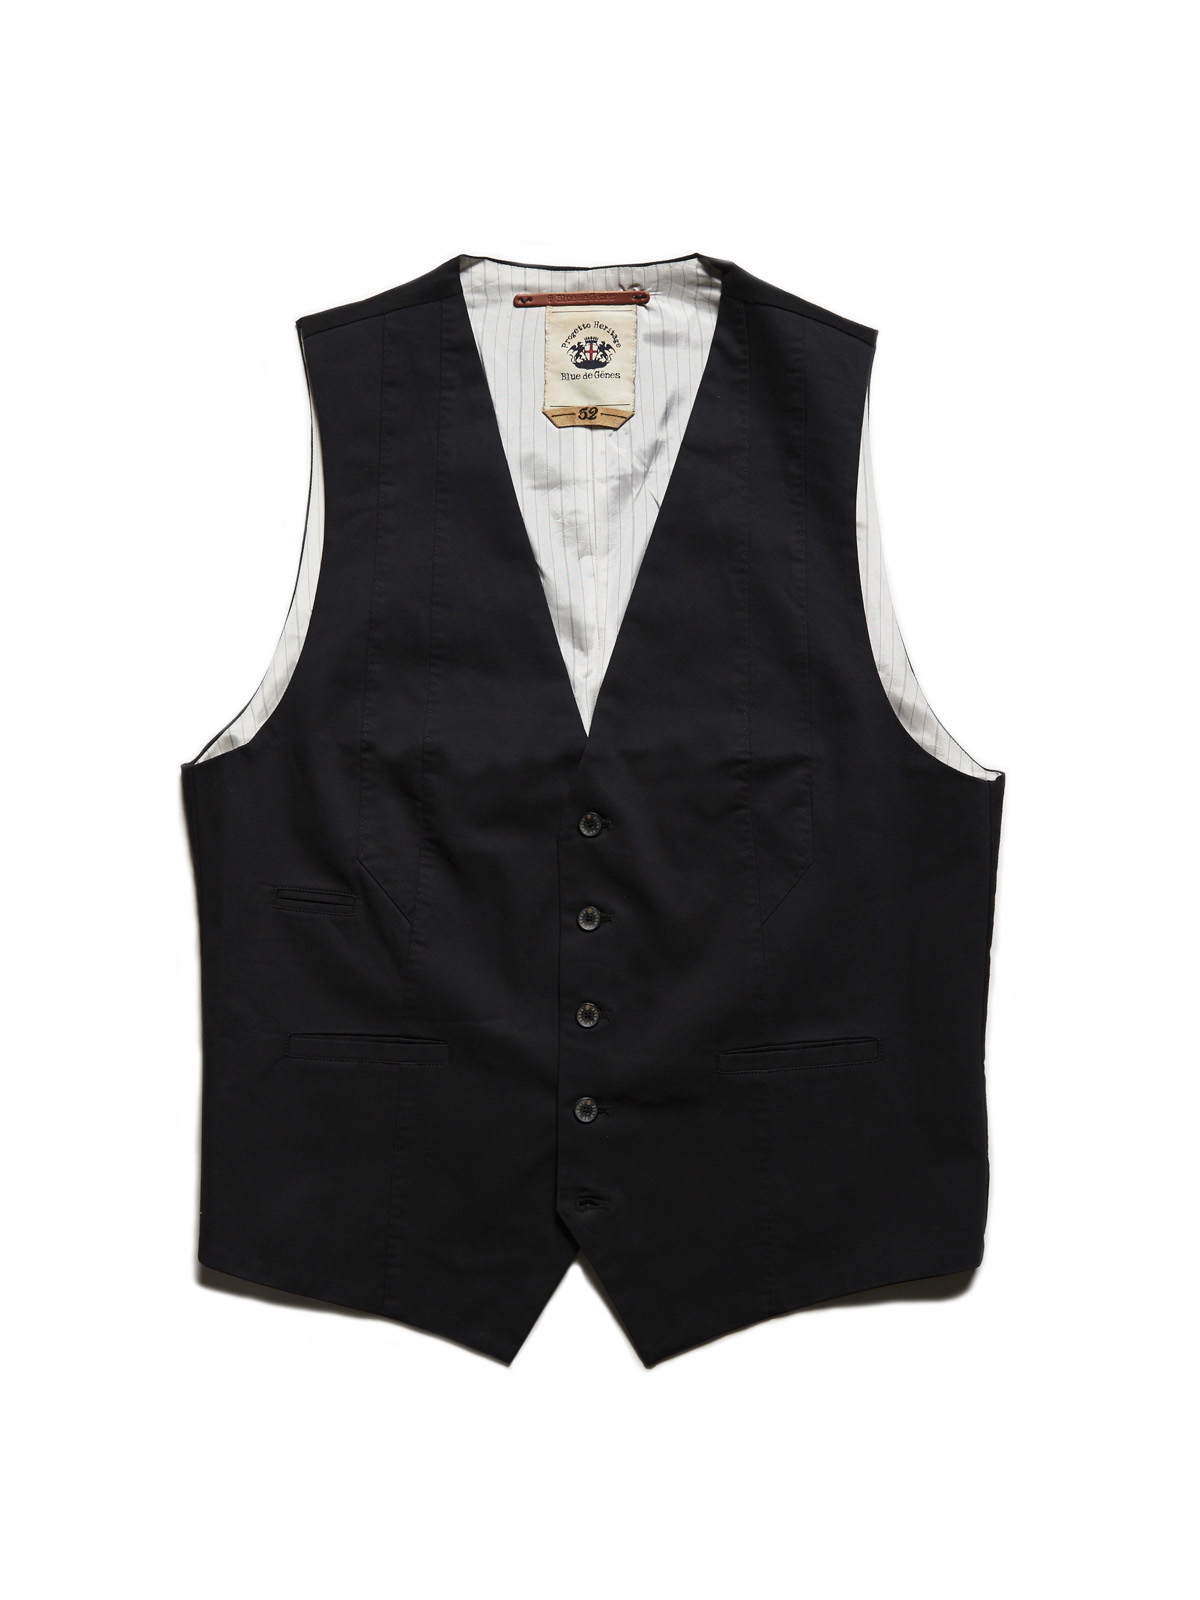 blue-de-genes-waistcoat-long-john-blog-denmark-clothing-brand-branding-clothes-jeans-denim-bluedegenes-genua-genes-4 (10)